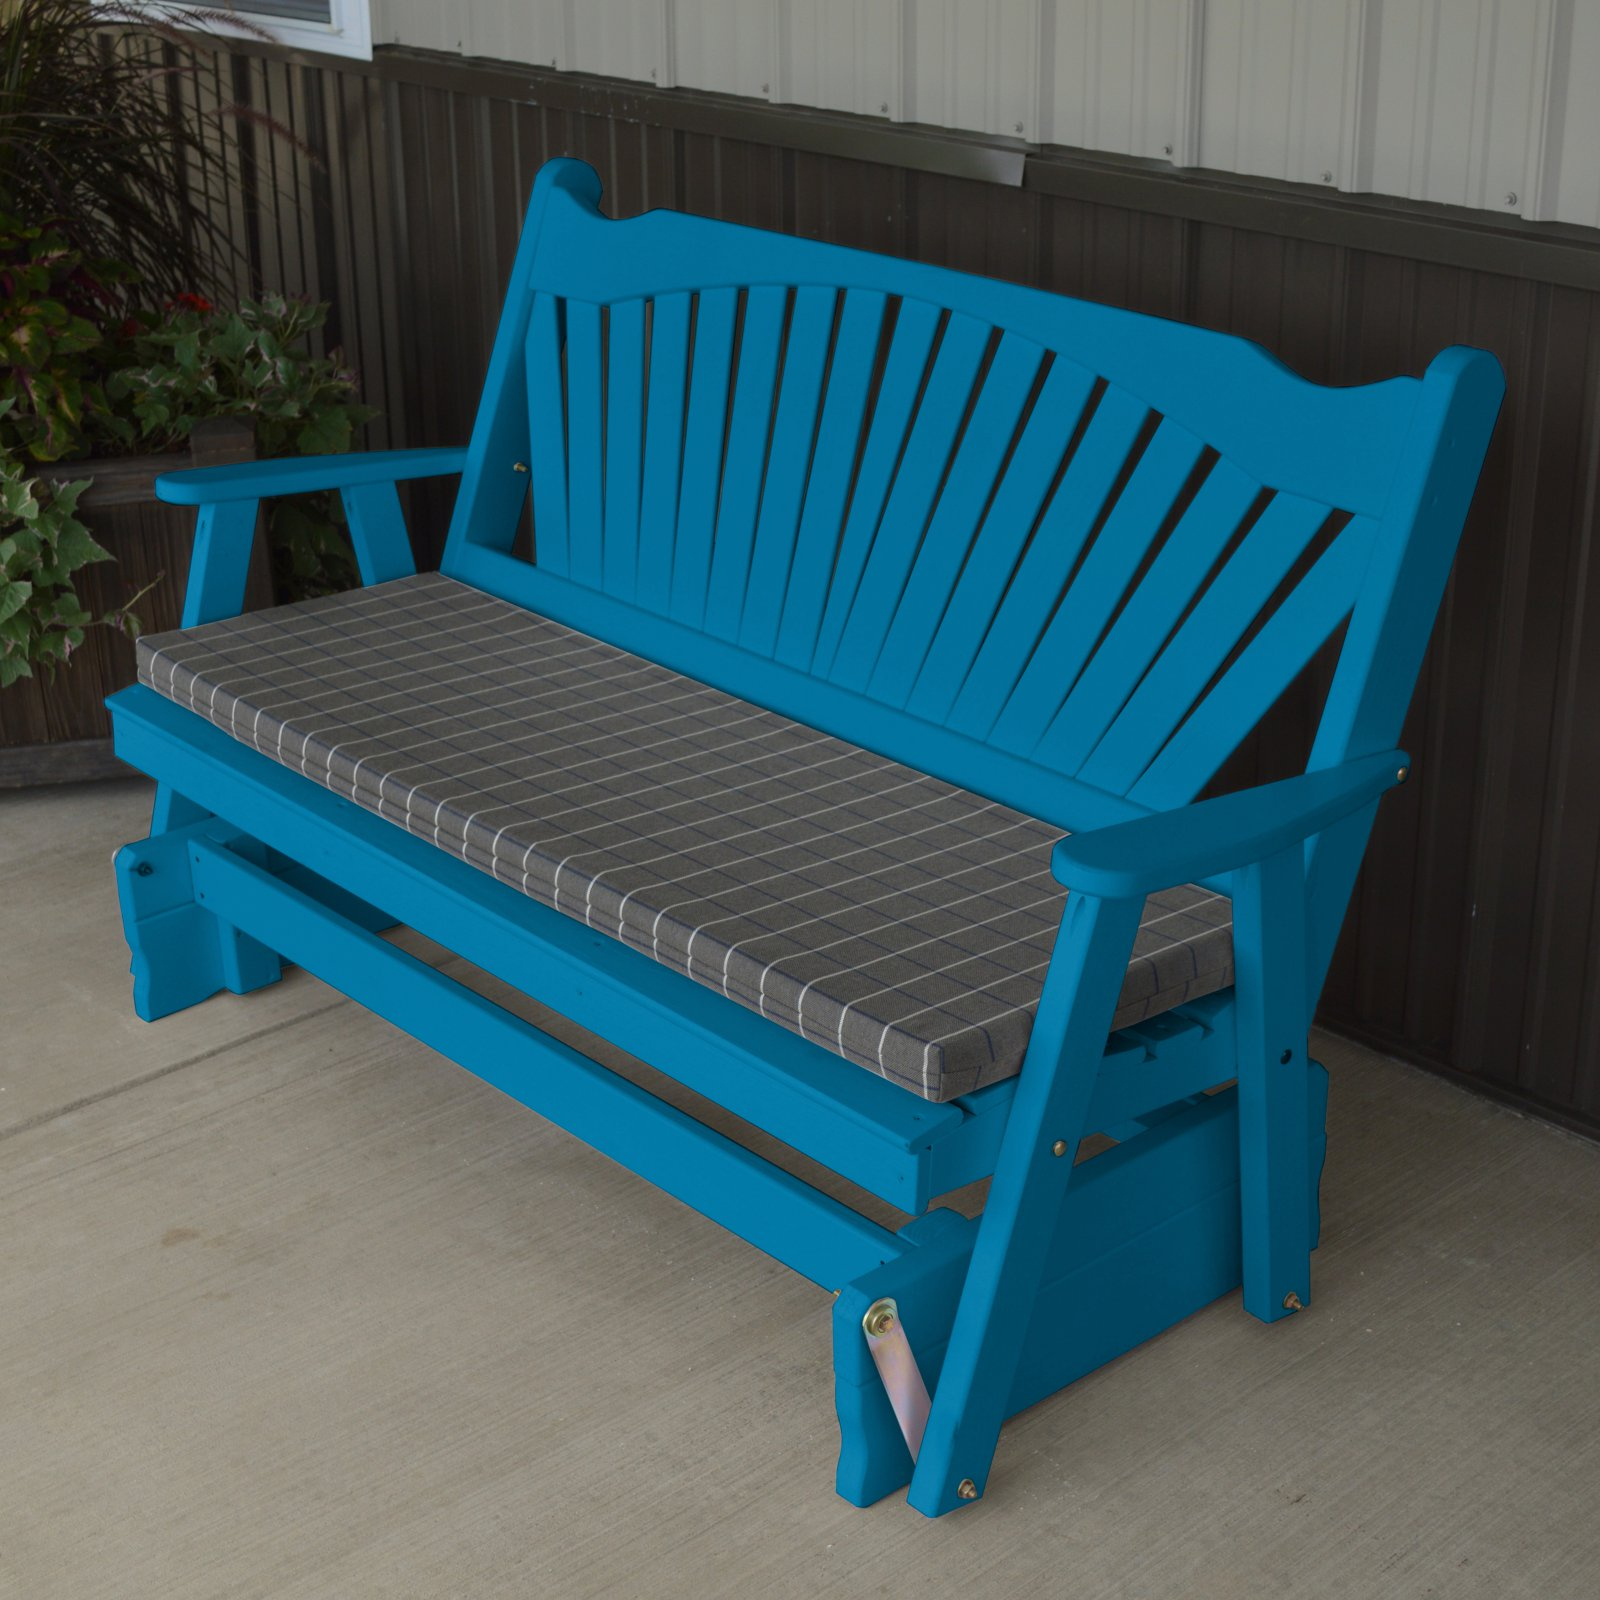 Most Recent Fanback Glider Benches For A & L Furniture Yellow Pine Fanback Outdoor Bench Glider (Gallery 4 of 30)